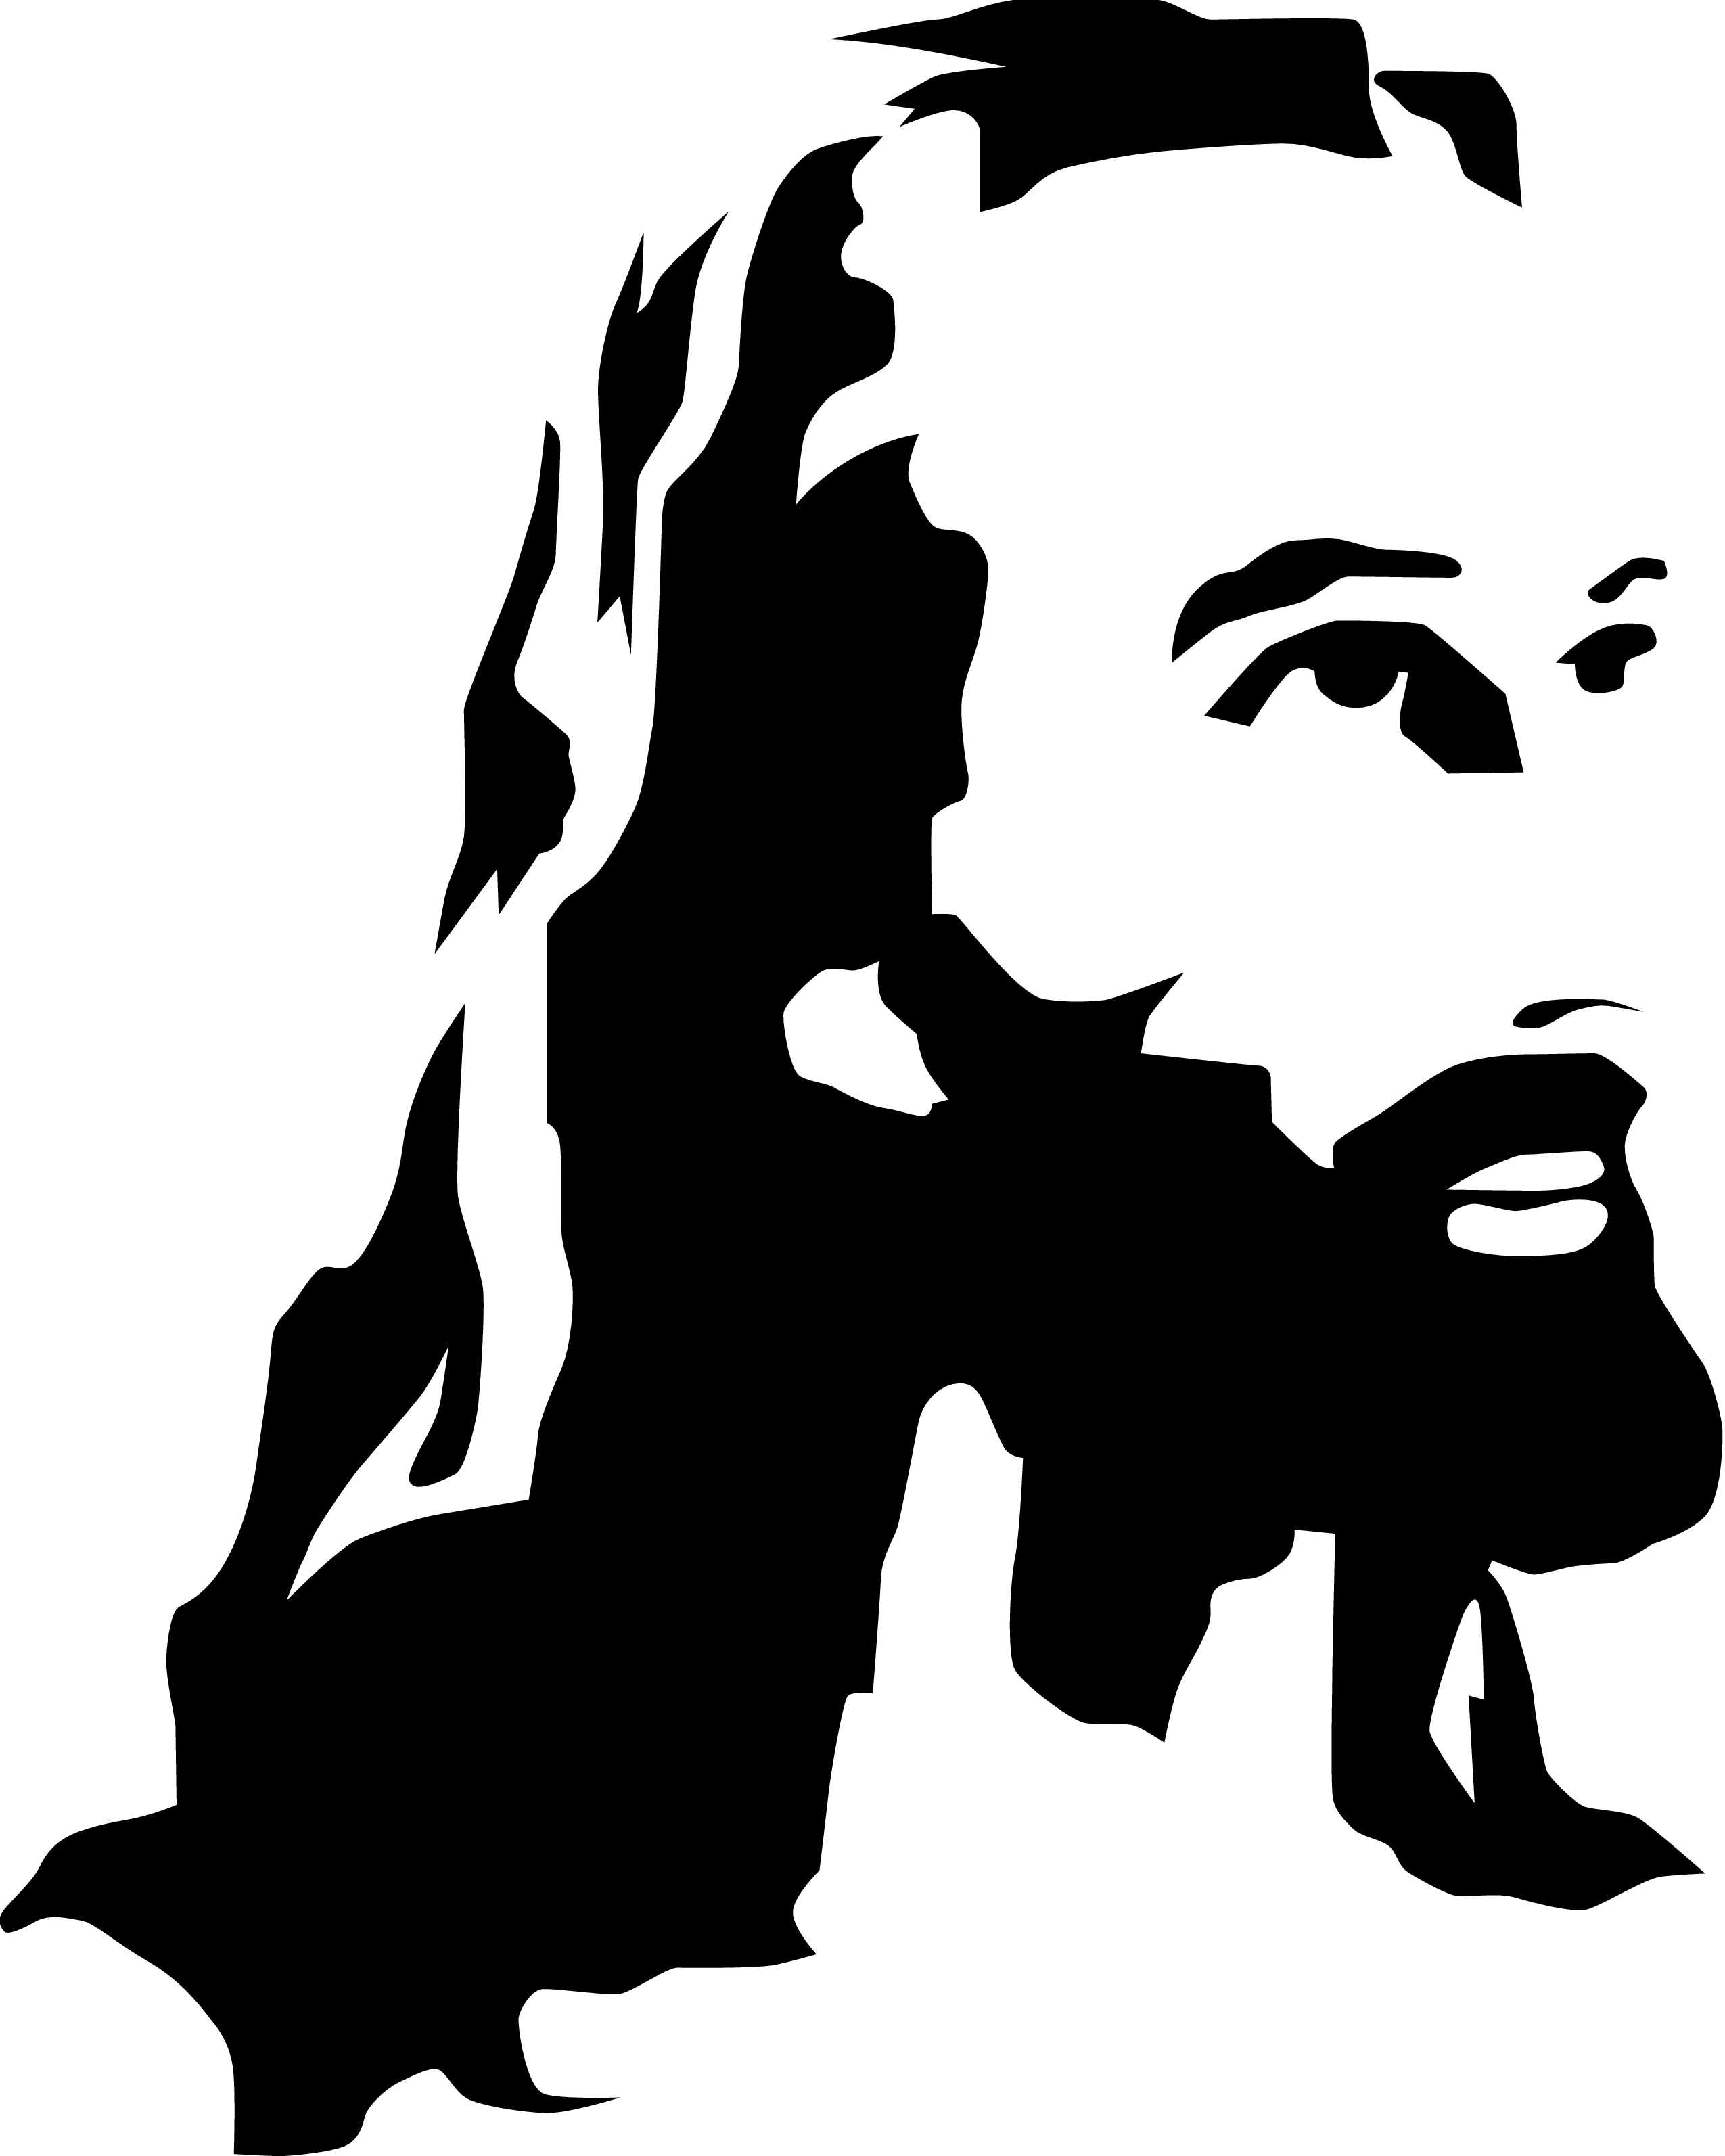 2550x3187 15 Pictures Of Jesus Face Black White Collections Black